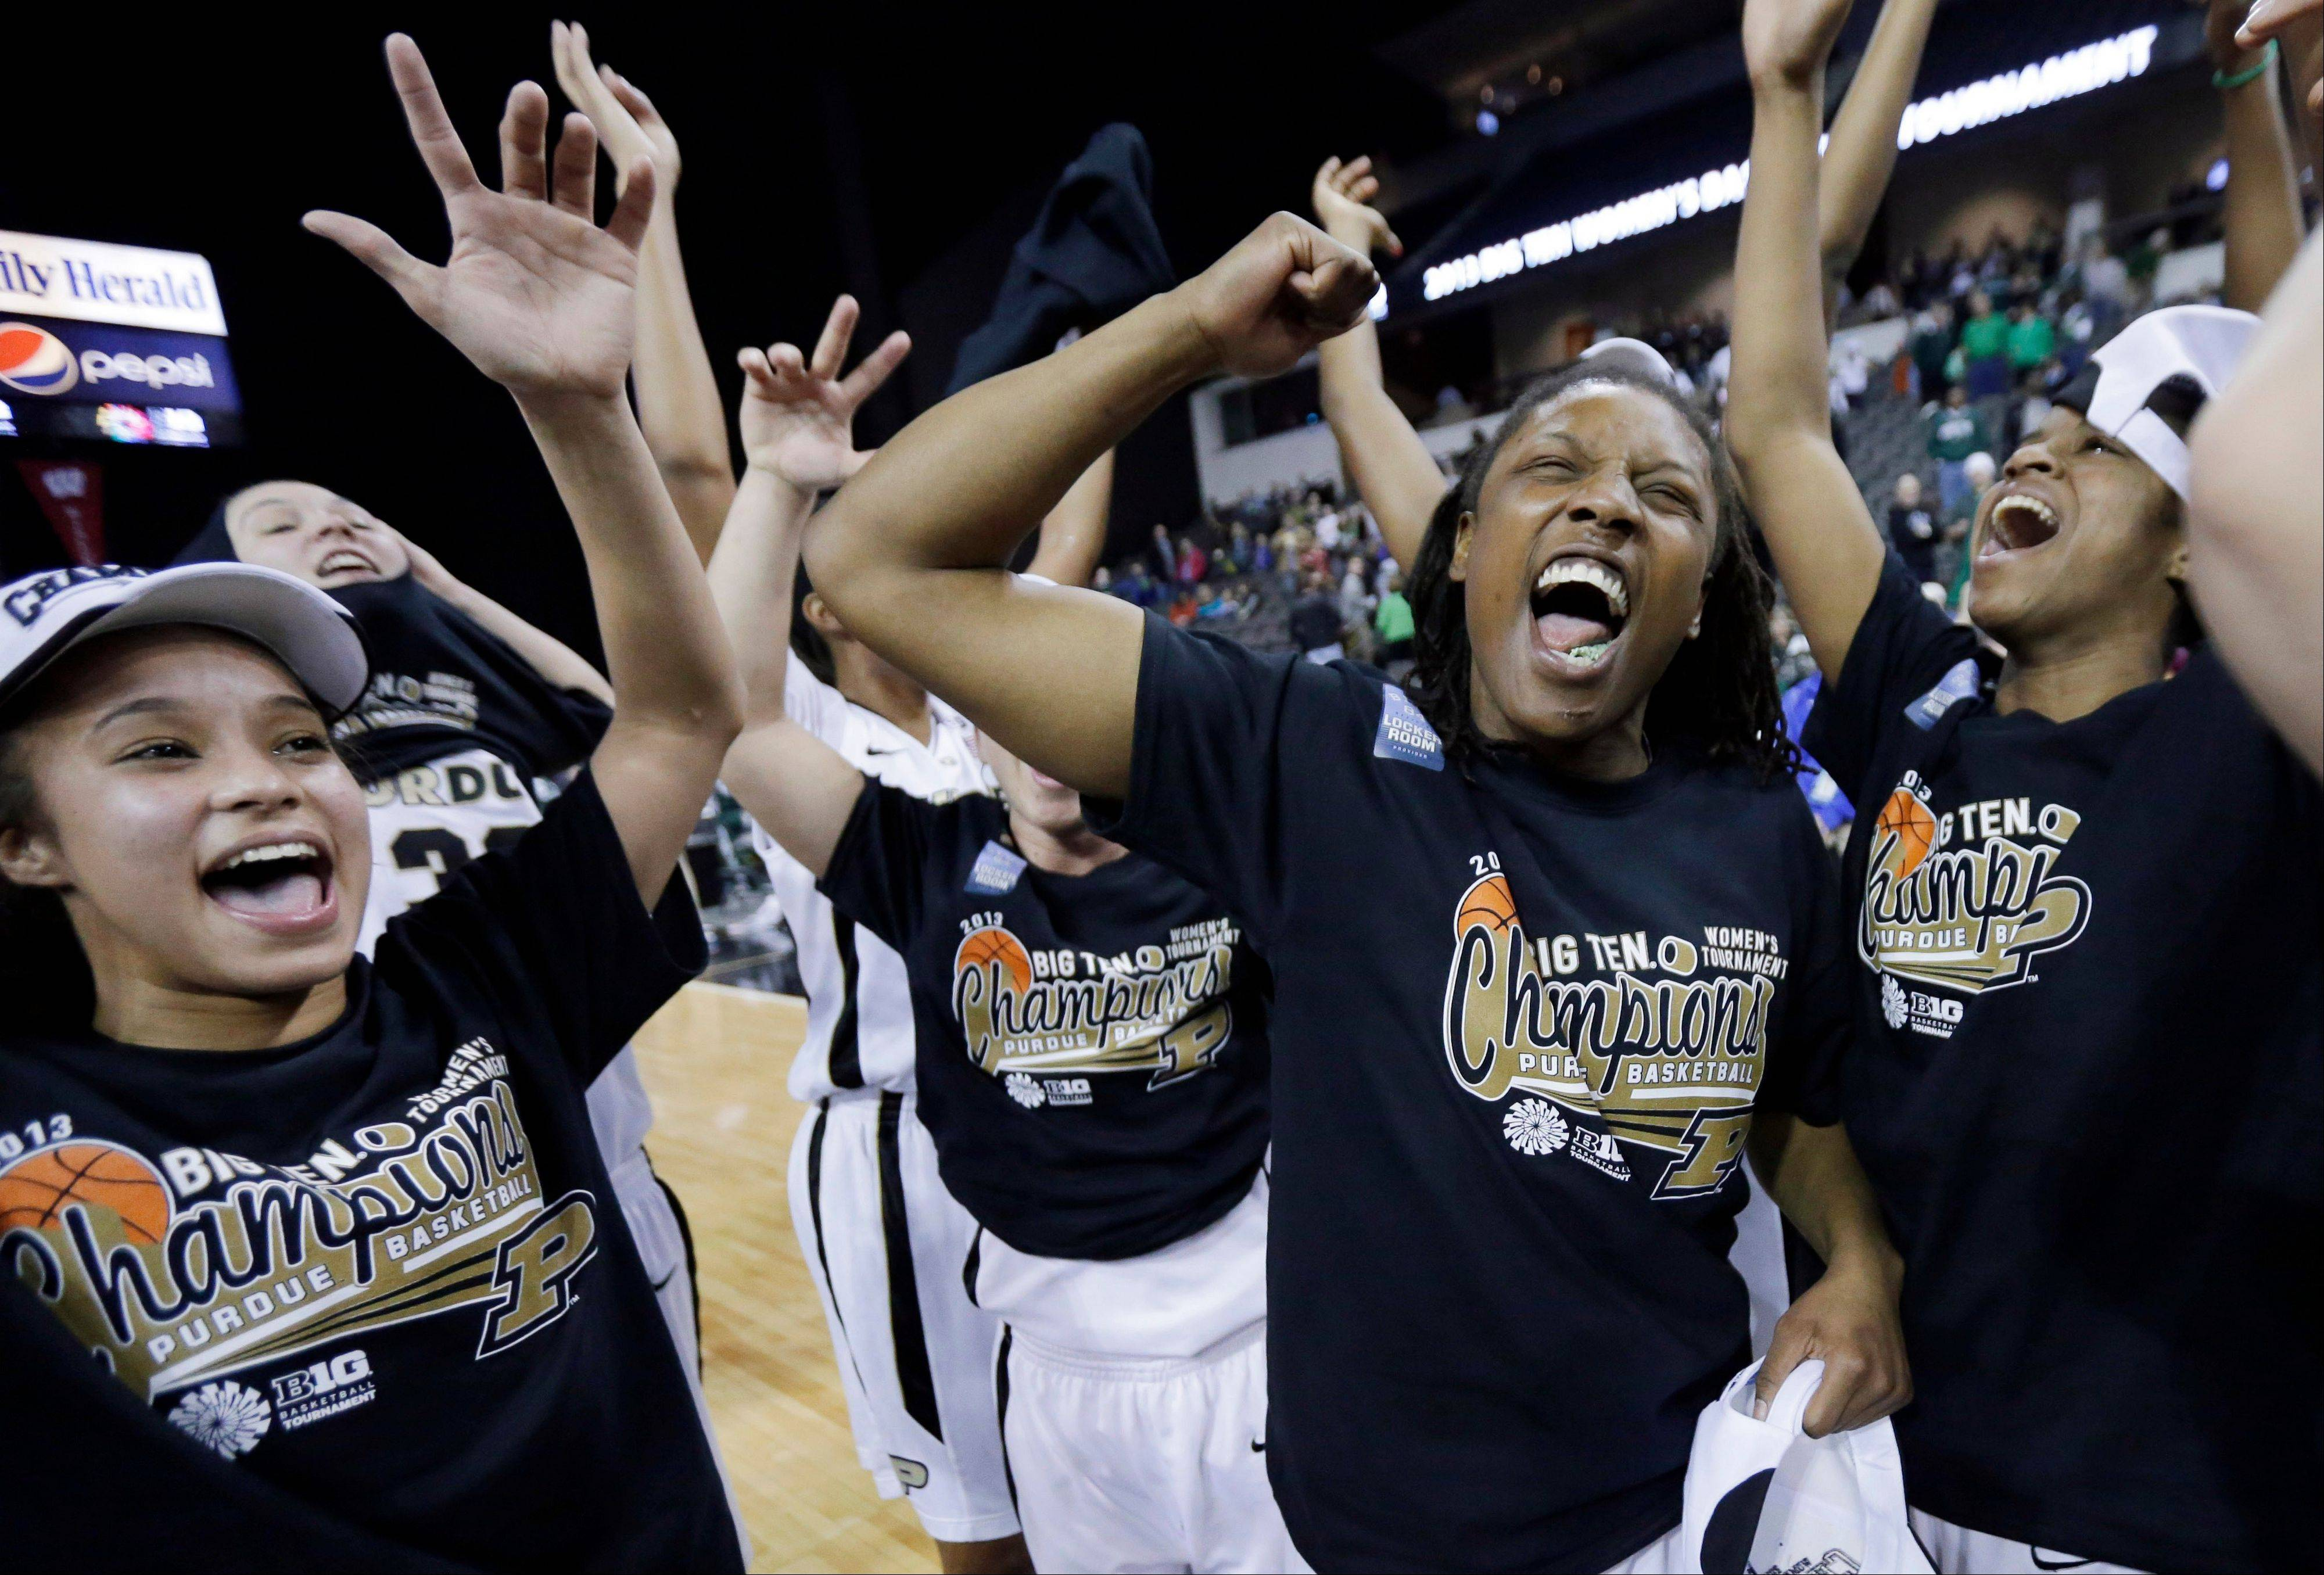 Purdue guard KK Houser, left, guard Chantel Poston, middle, and guard Torrie Thornton celebrate after their 62-47 win over Michigan State in Sunday's Big Ten title game in Hoffman Estates.